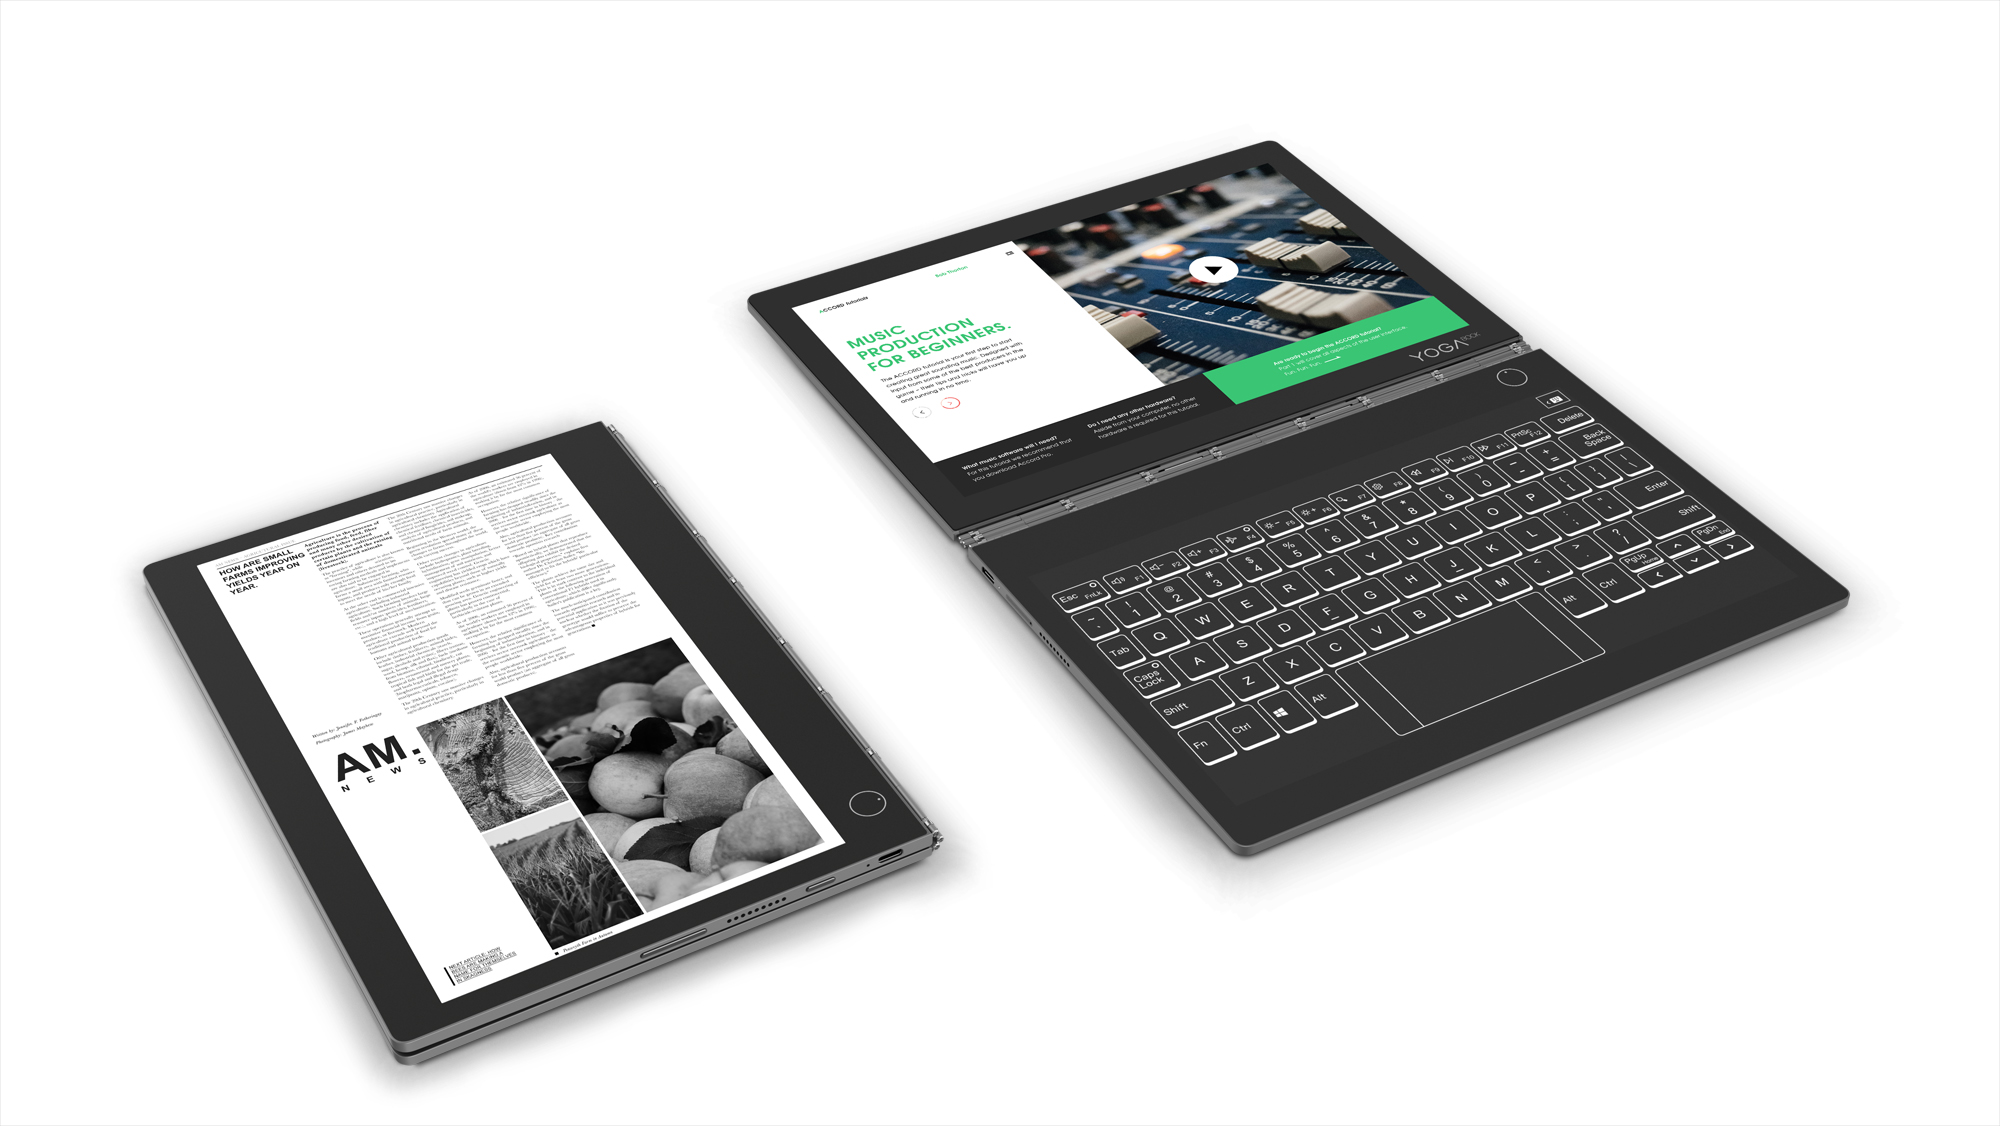 Lenovo's Yoga Book C930 swaps the keyboard for an E Ink display